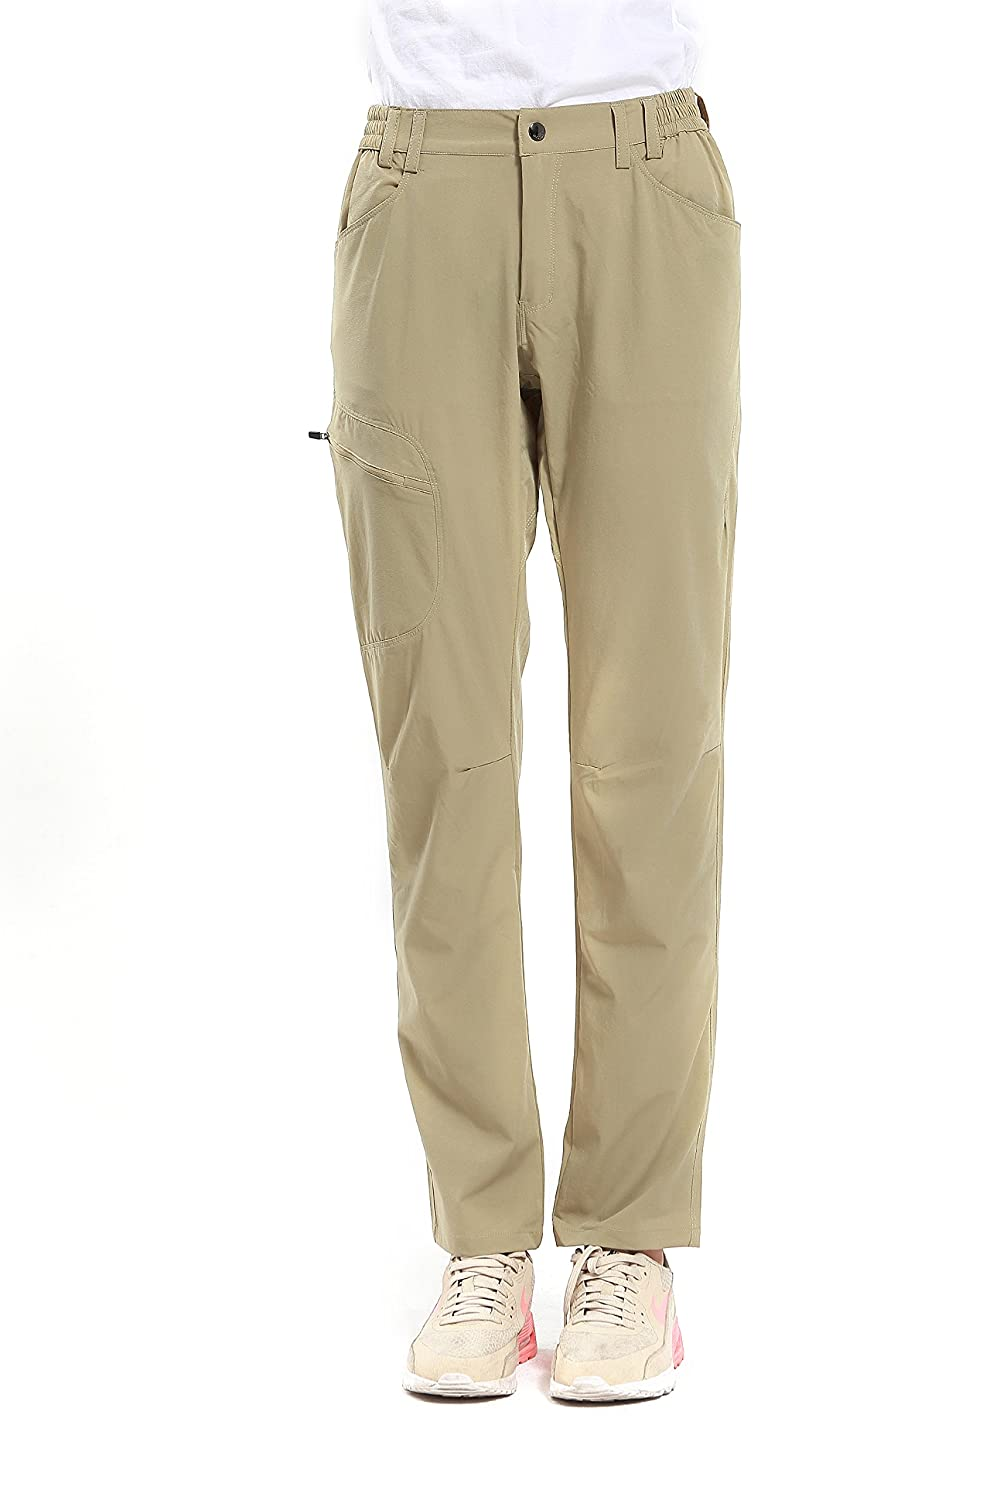 Diamond Candy Lightweight Quick-Dry Hiking Mountain Pants Woman's Outdoor Activewear